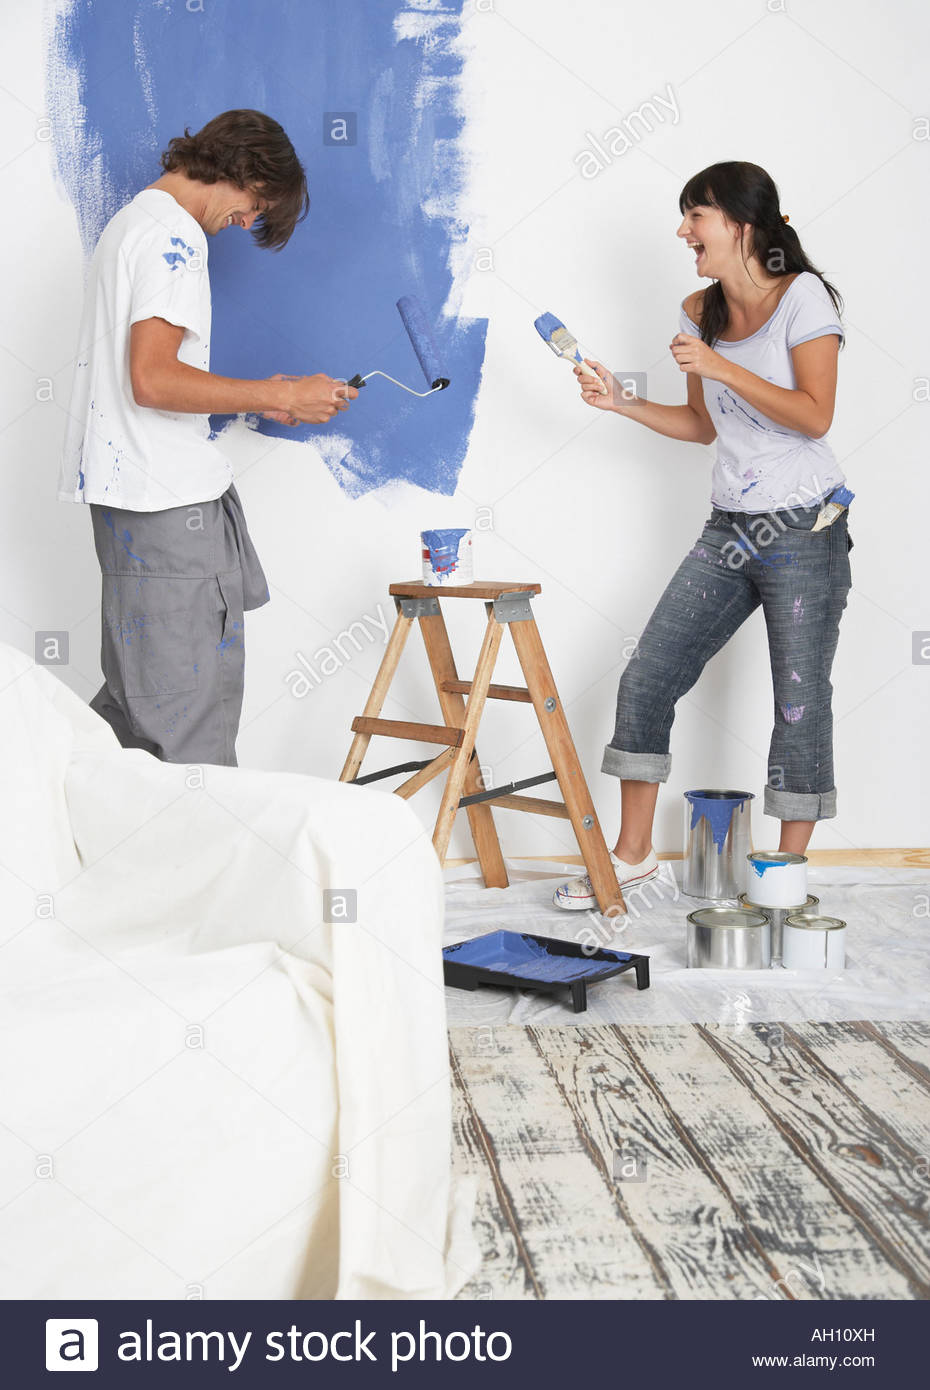 Man and woman playing with paint and laughing - Stock Image